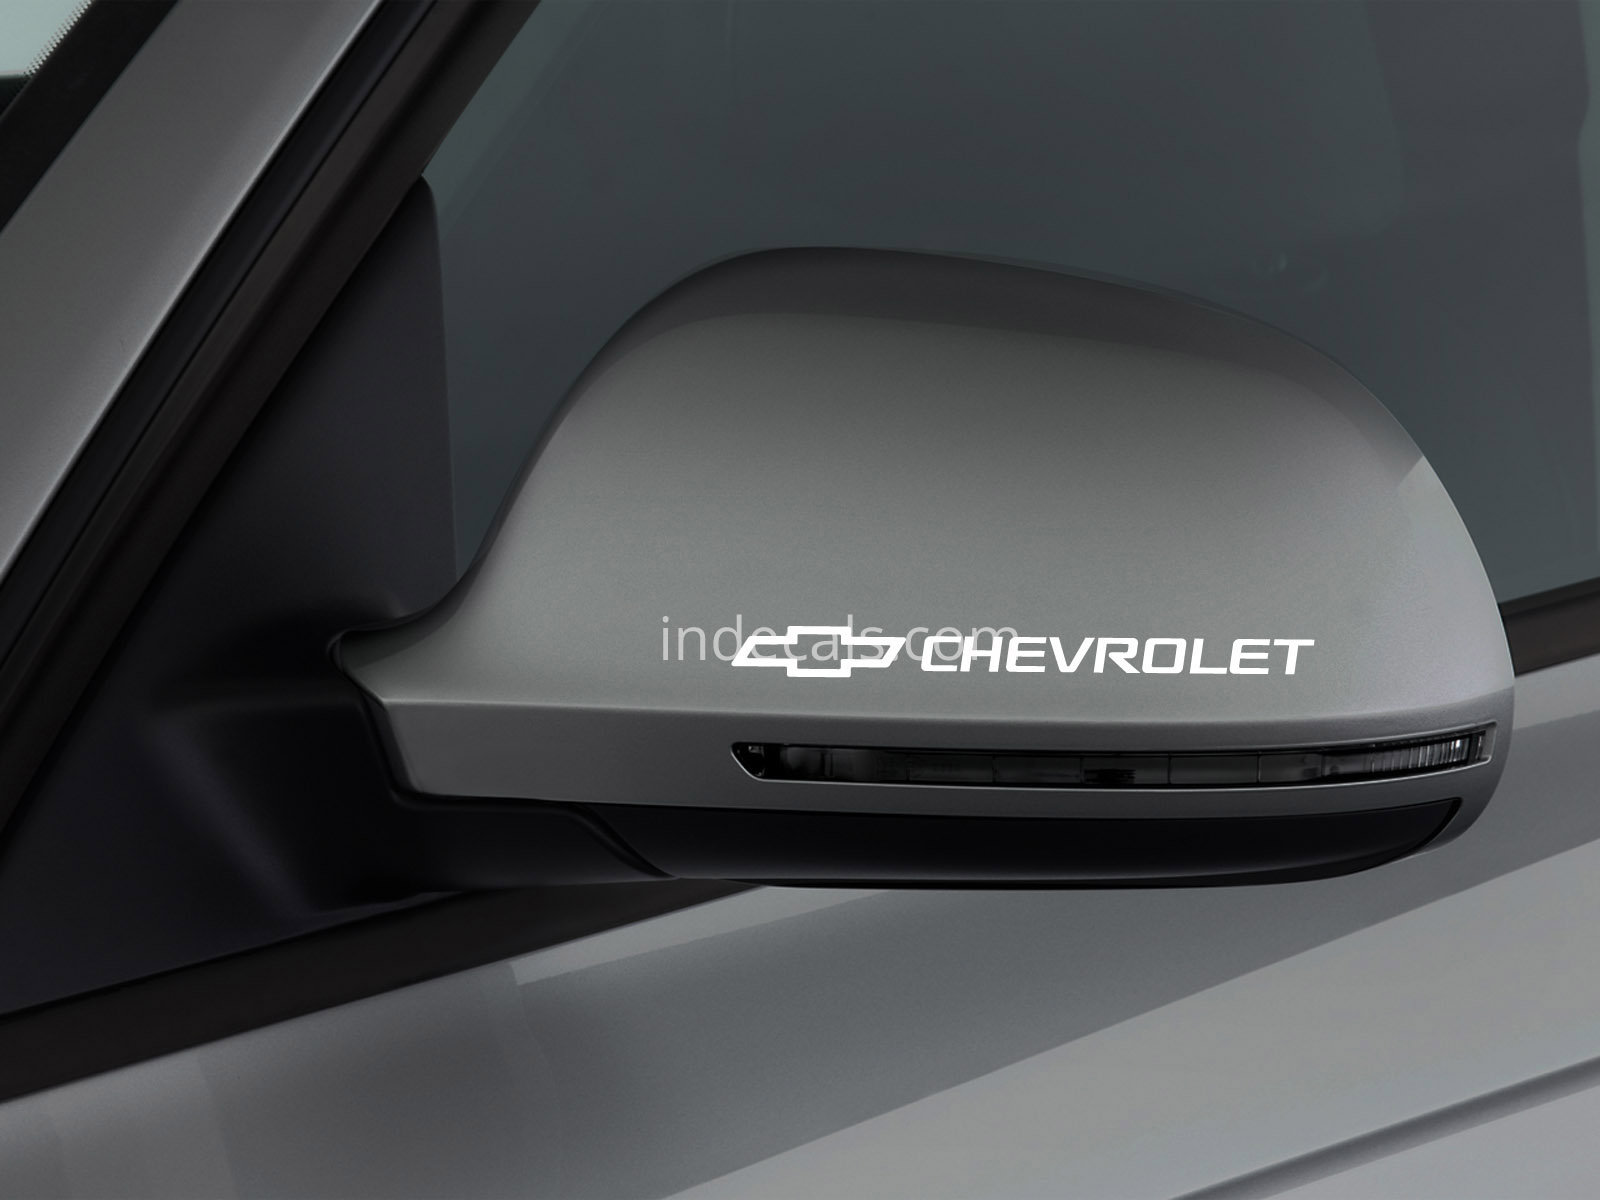 3 x Chevrolet Stickers for Mirror - White